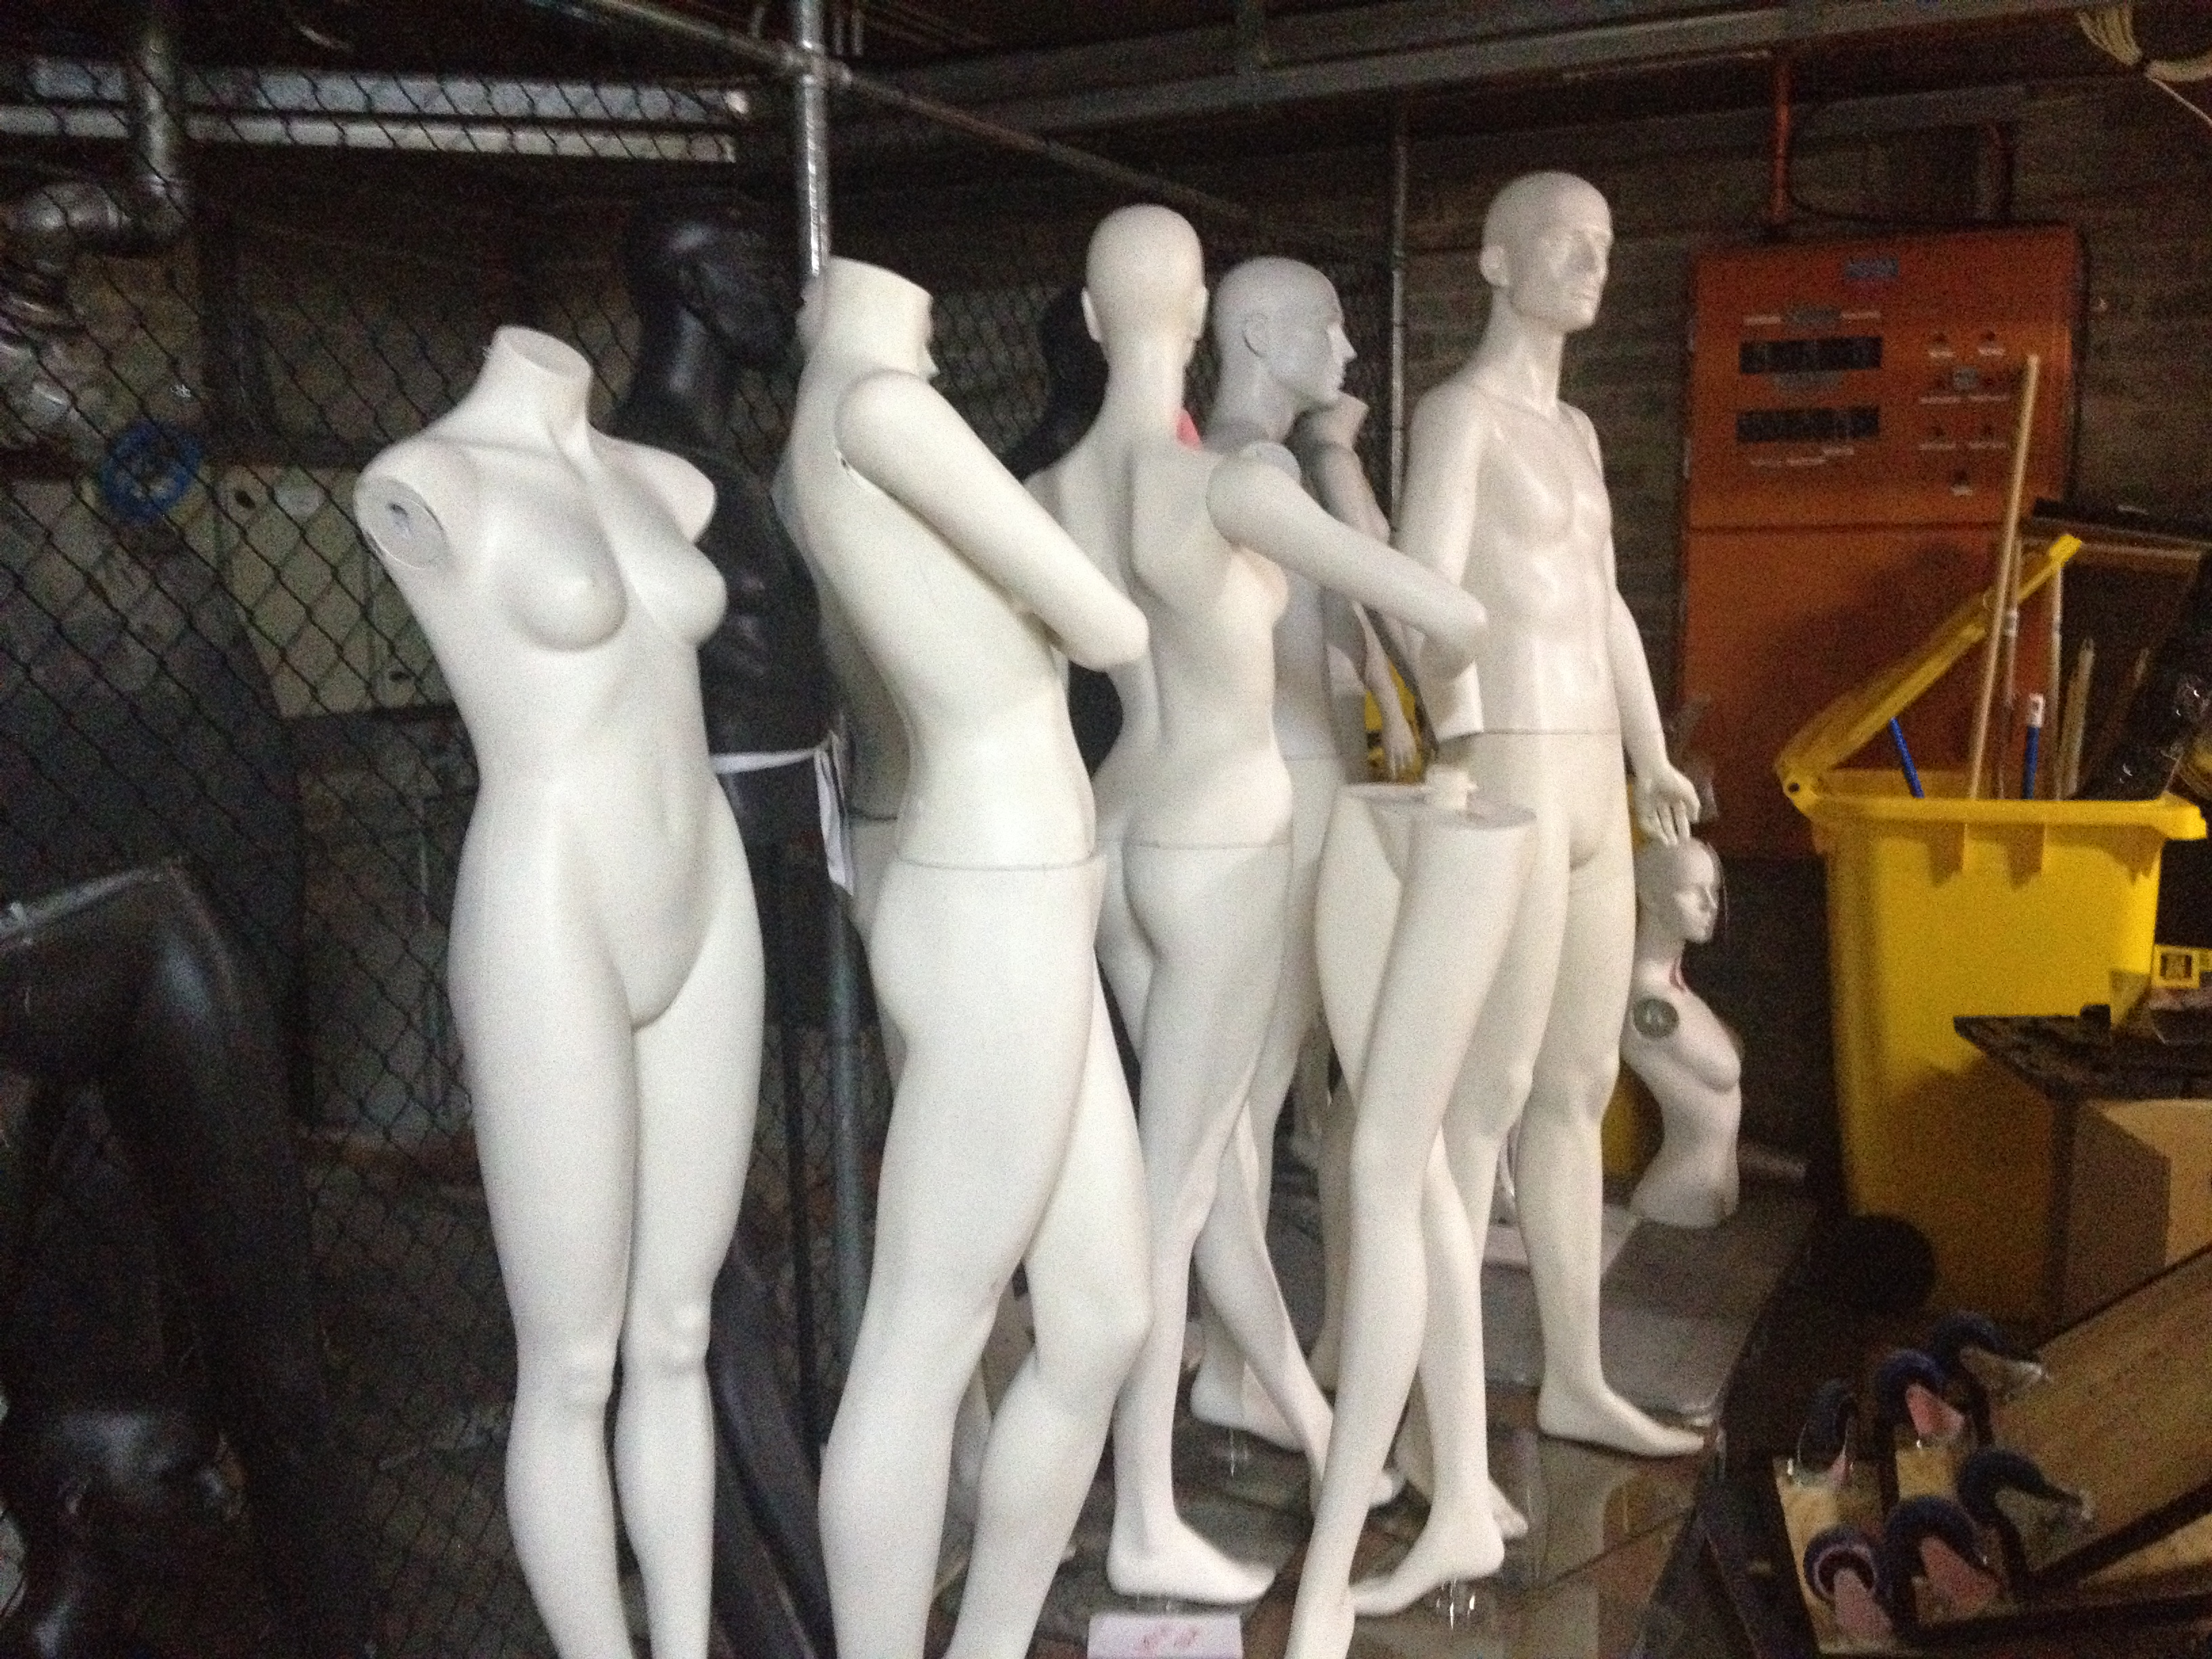 The mannequin store at the Powerhouse Museum, Sydney, Australia. Photo: Rebecca Evans